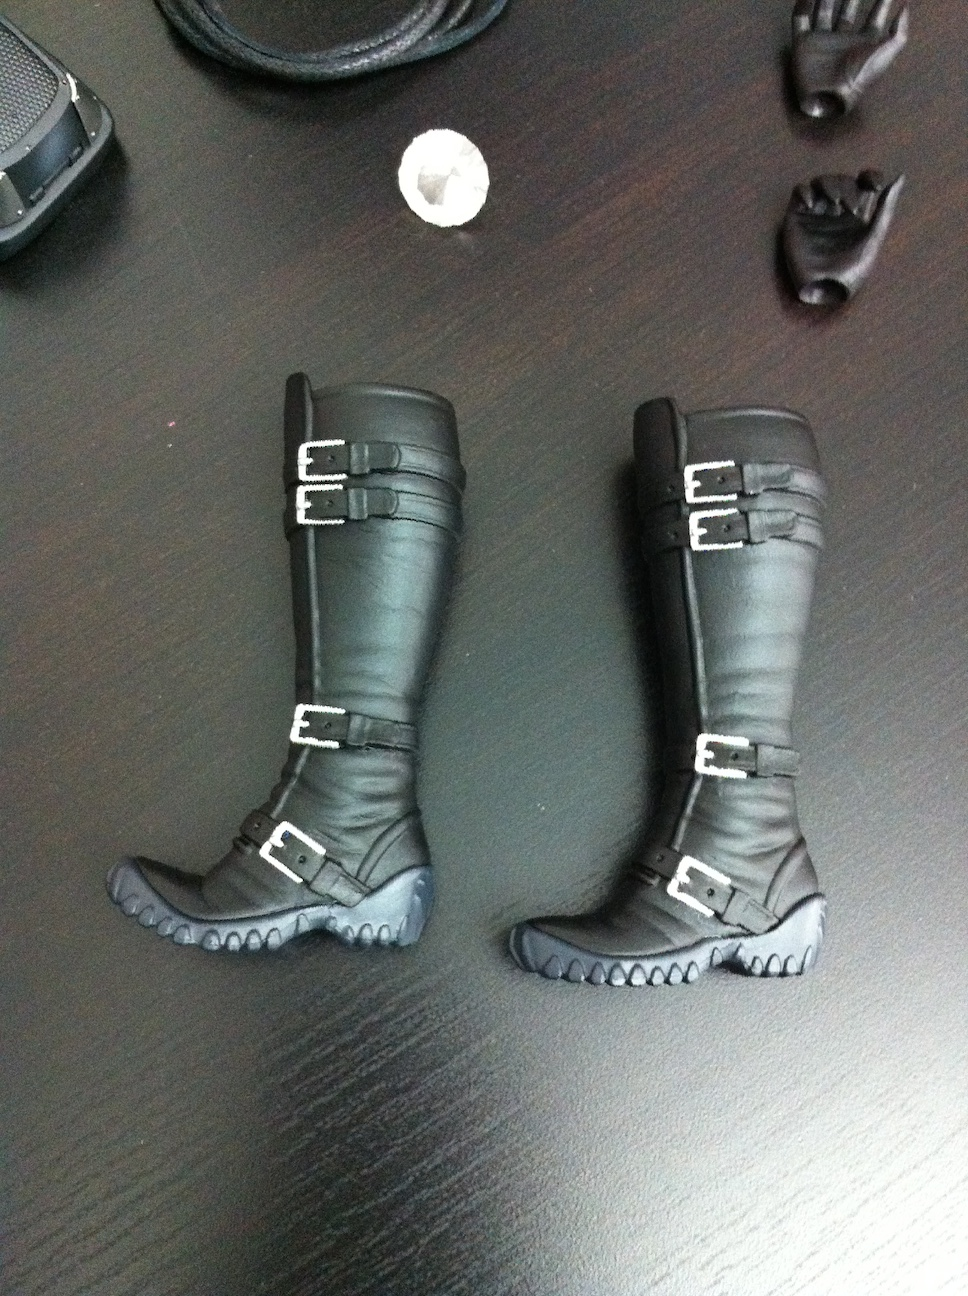 The Difference Between the Boots (It's Subtle)